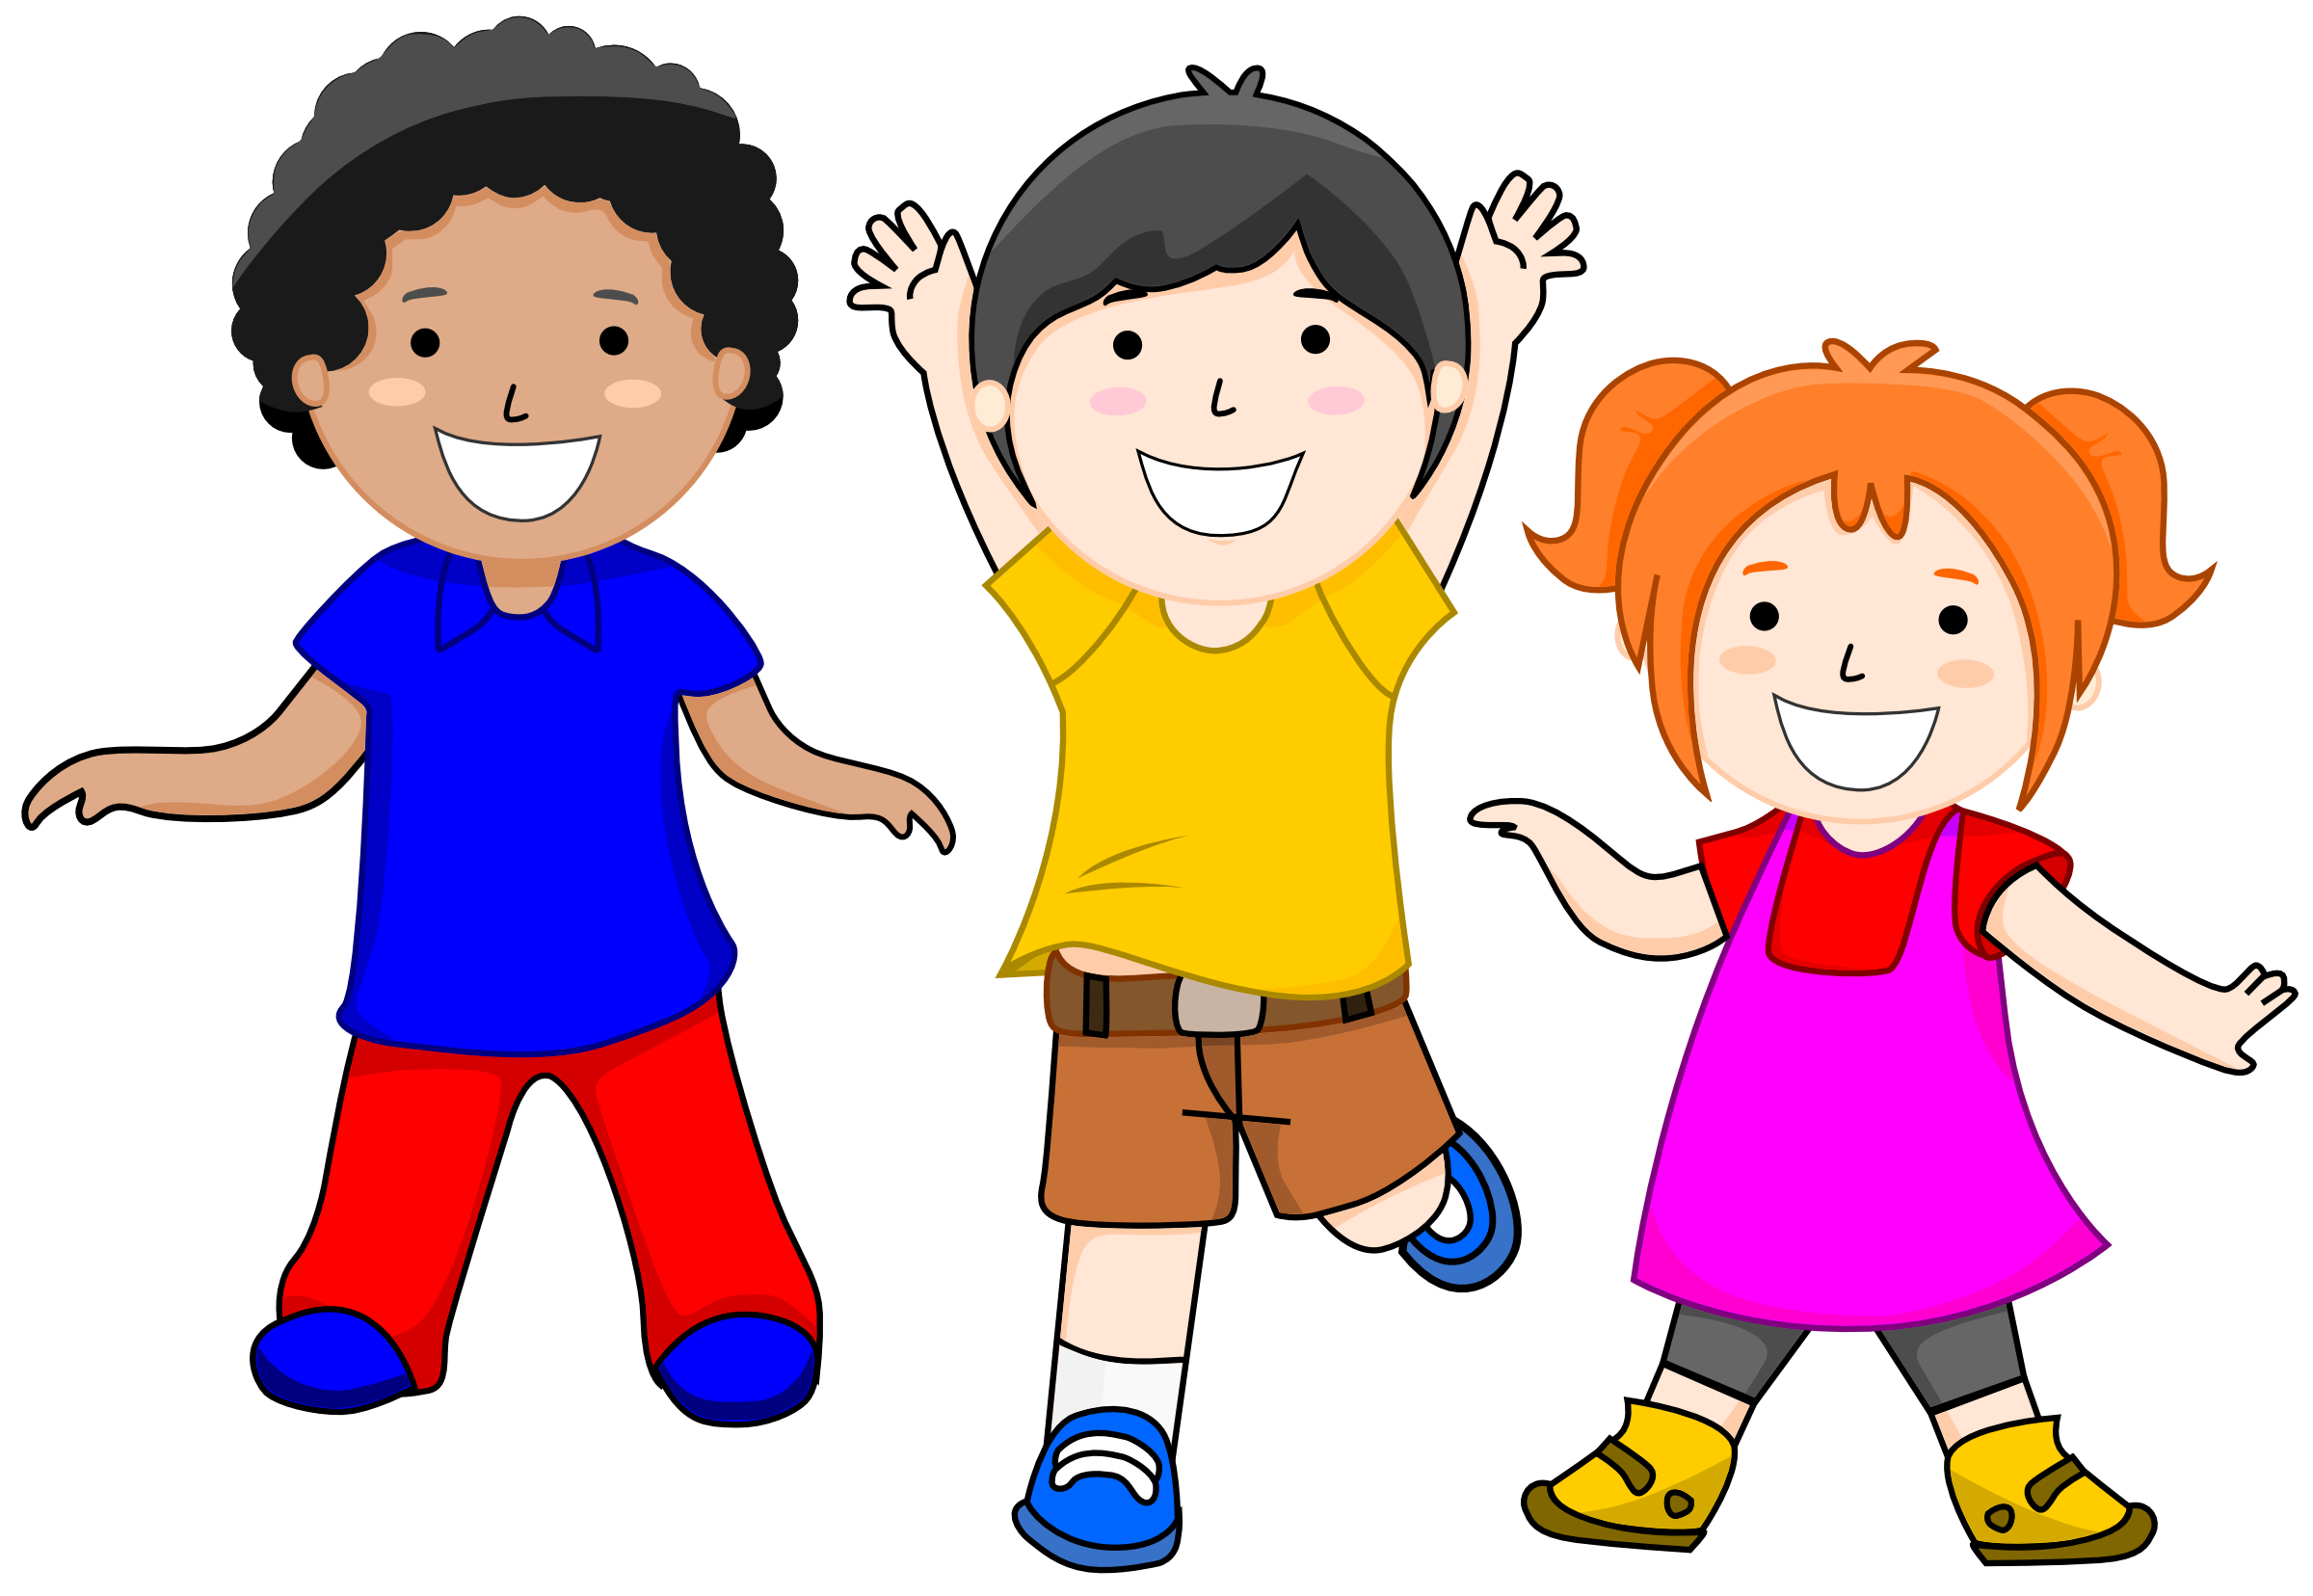 Summer clipart happy person #7